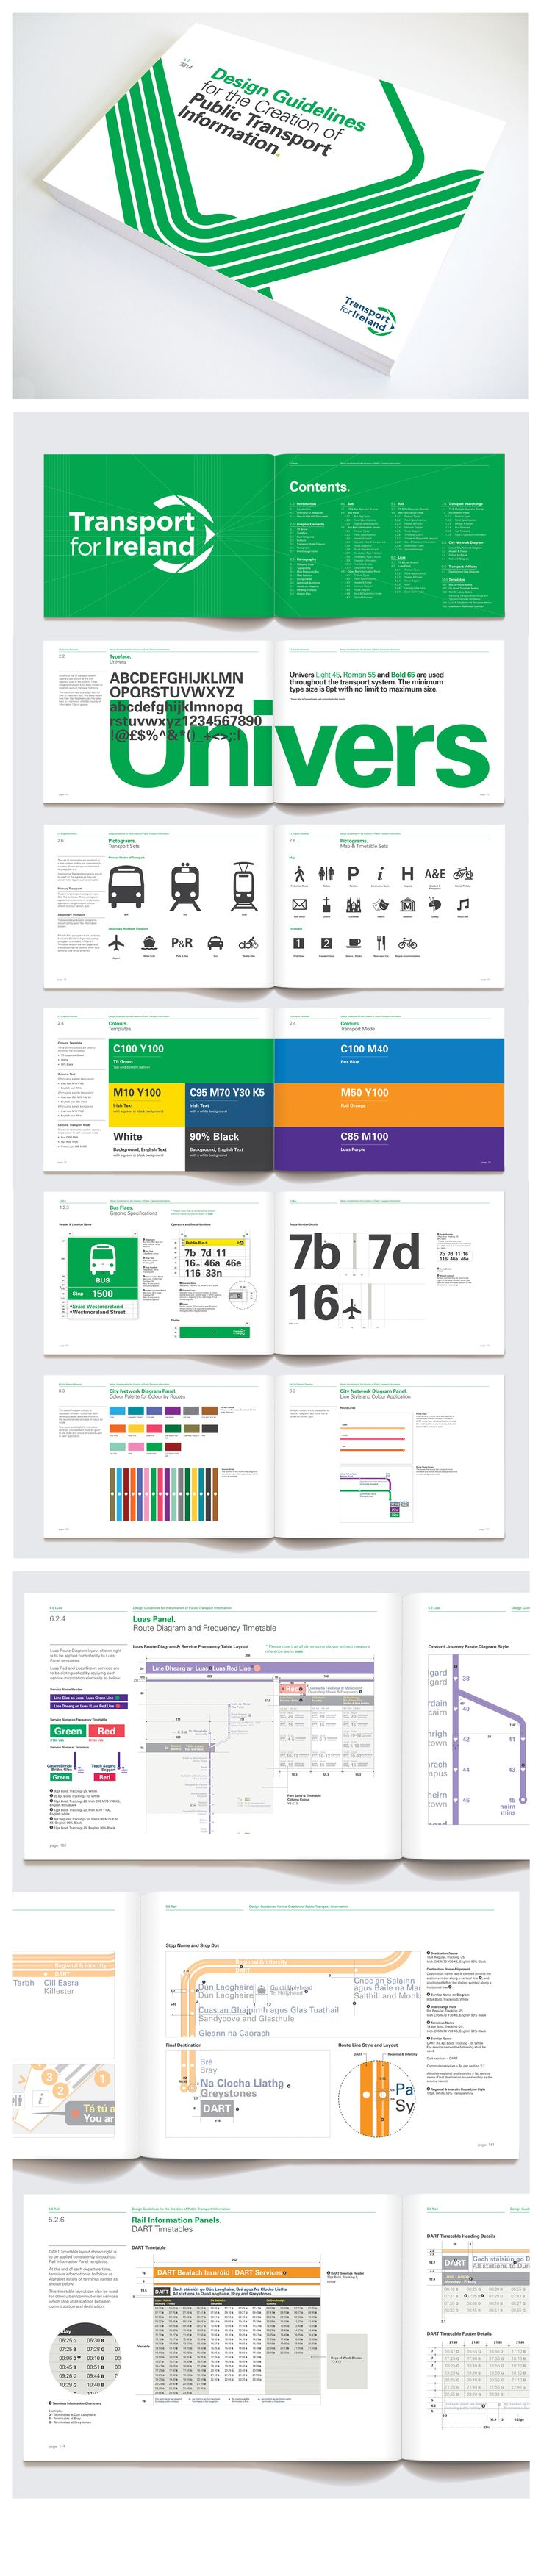 Transport for Ireland Design guidelines for the creation of public transport information by fwdesign